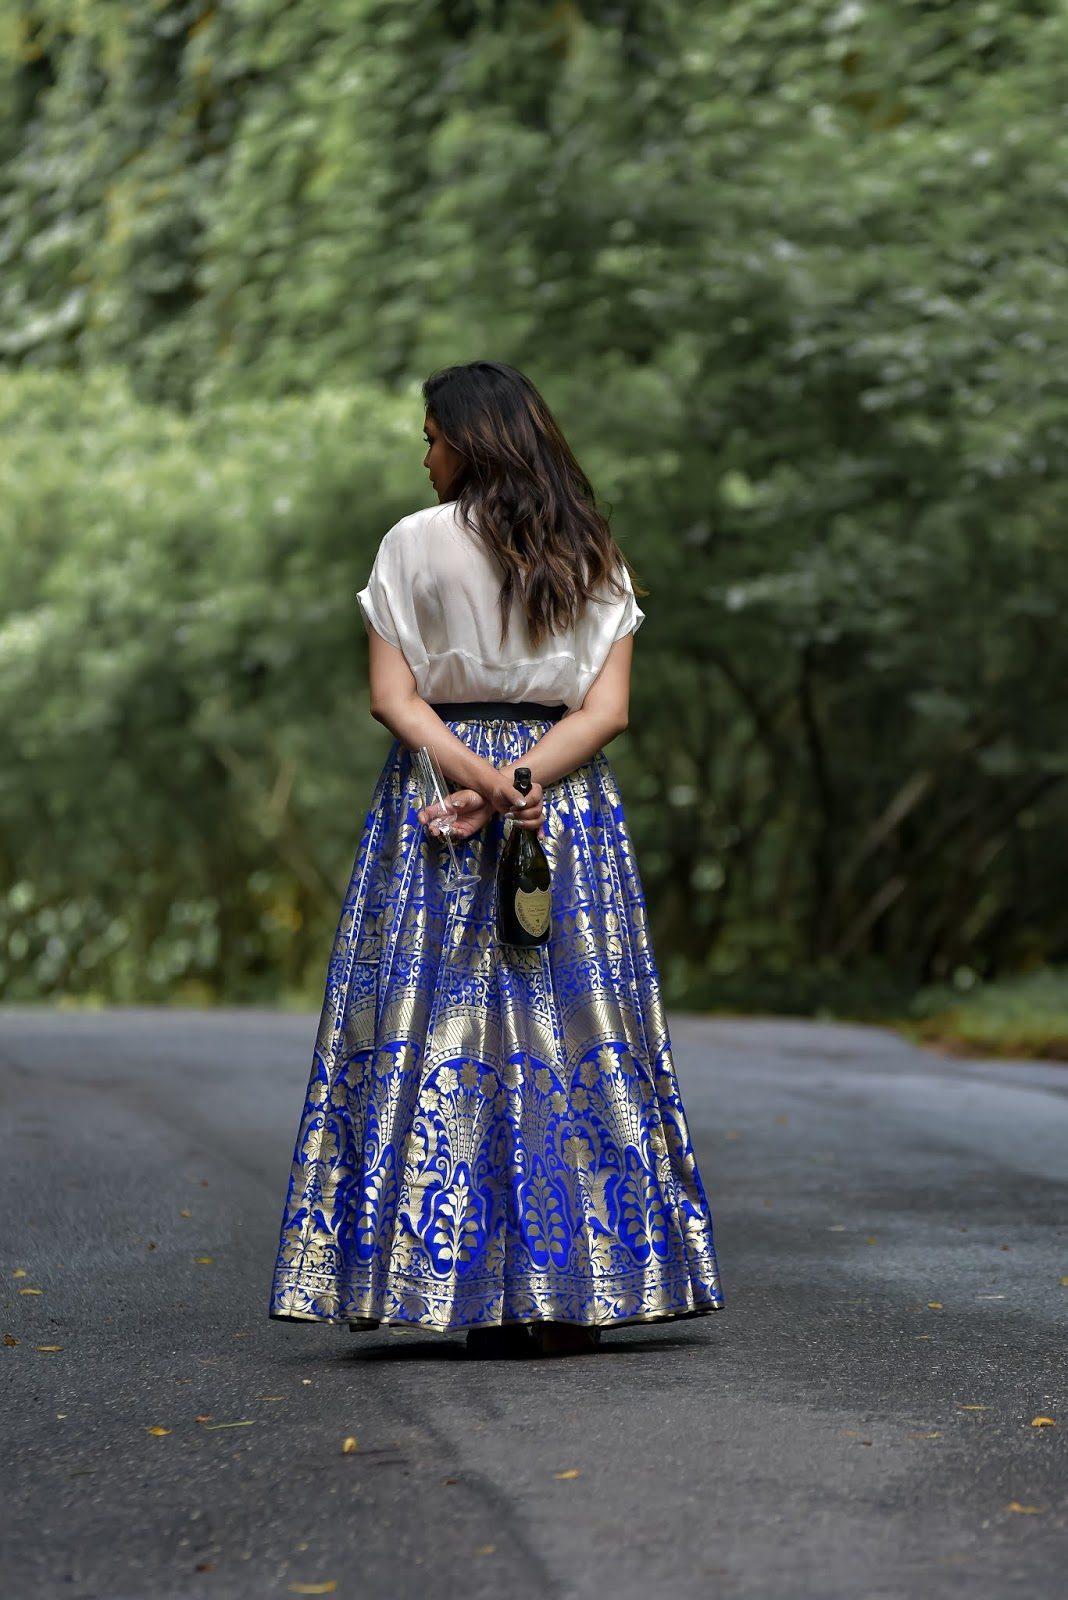 fusion wear, indian, blue lehnga skirt outfit, wedding outfit, blue banarsi skirt outfit, gucci marmont belt, style, fashion, myriad musings, ootd